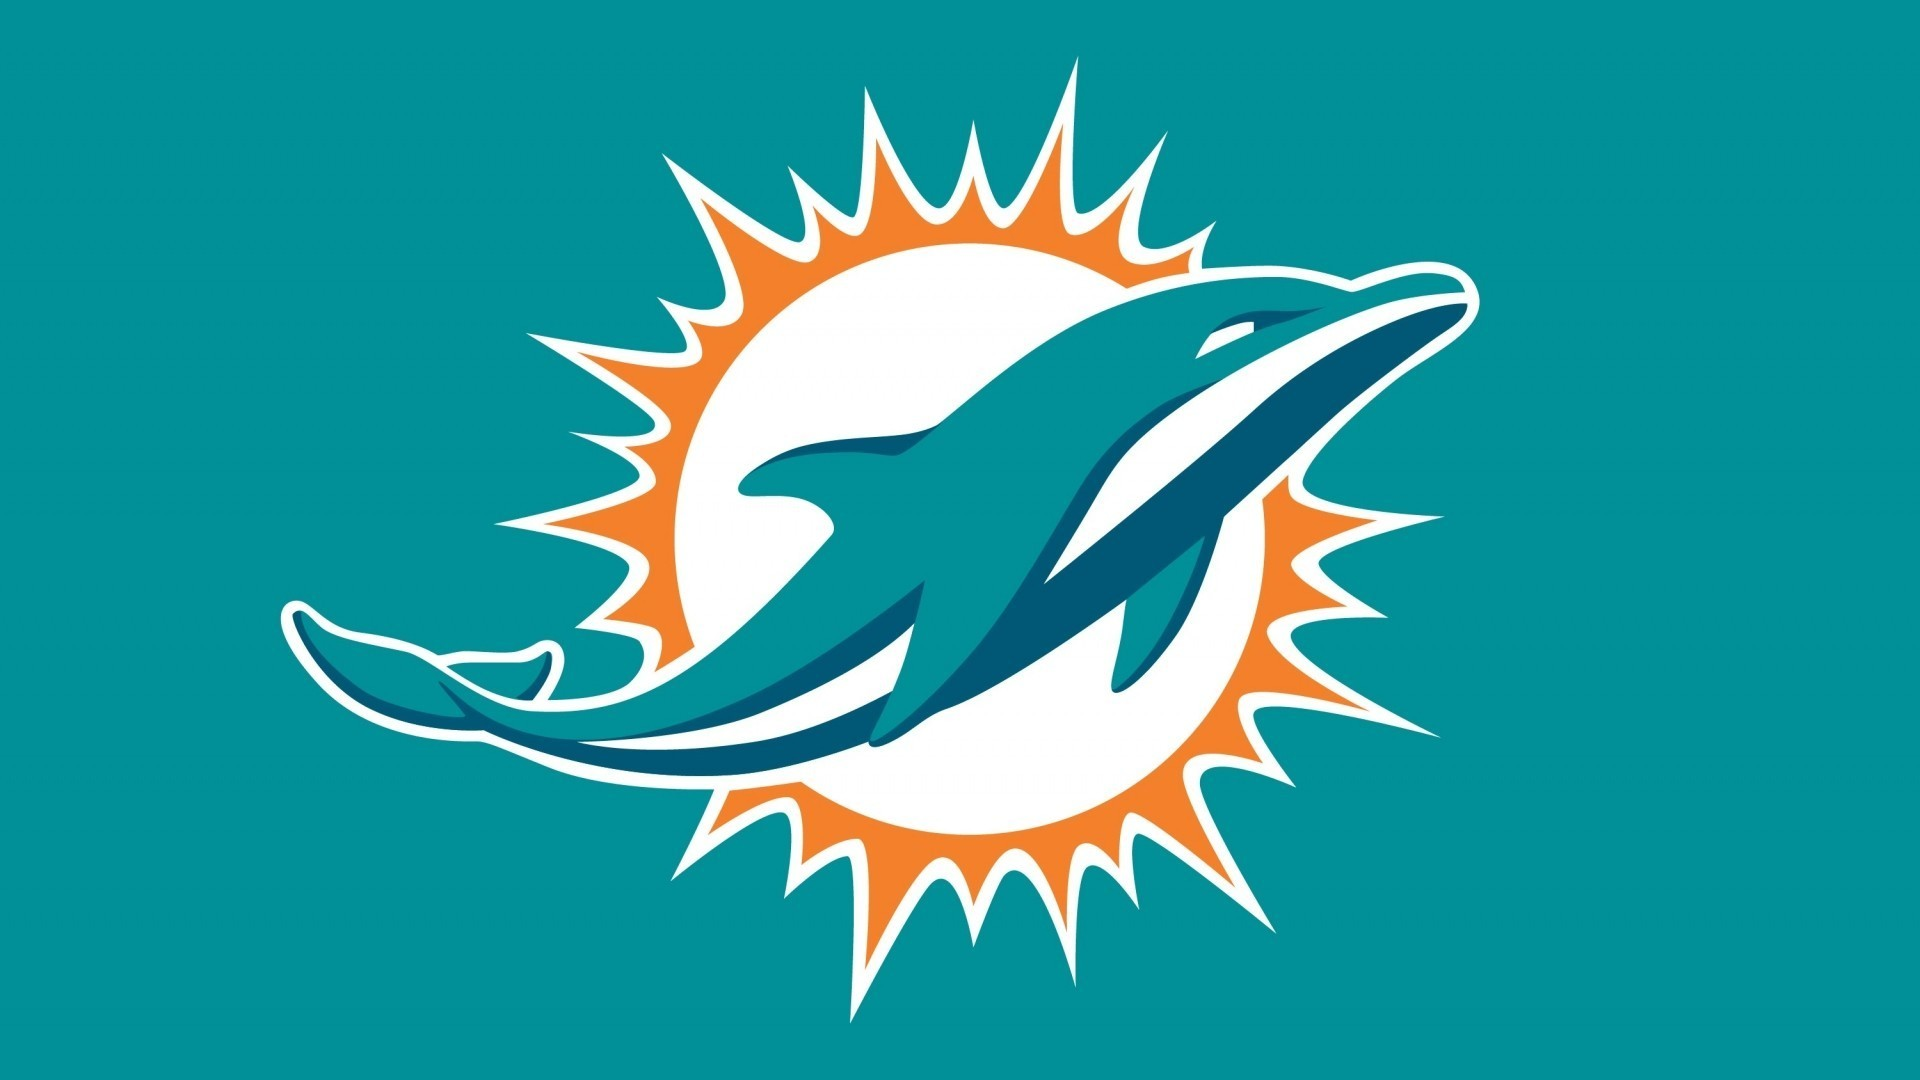 Background and Miami Dolphins Iphone Wallpapers